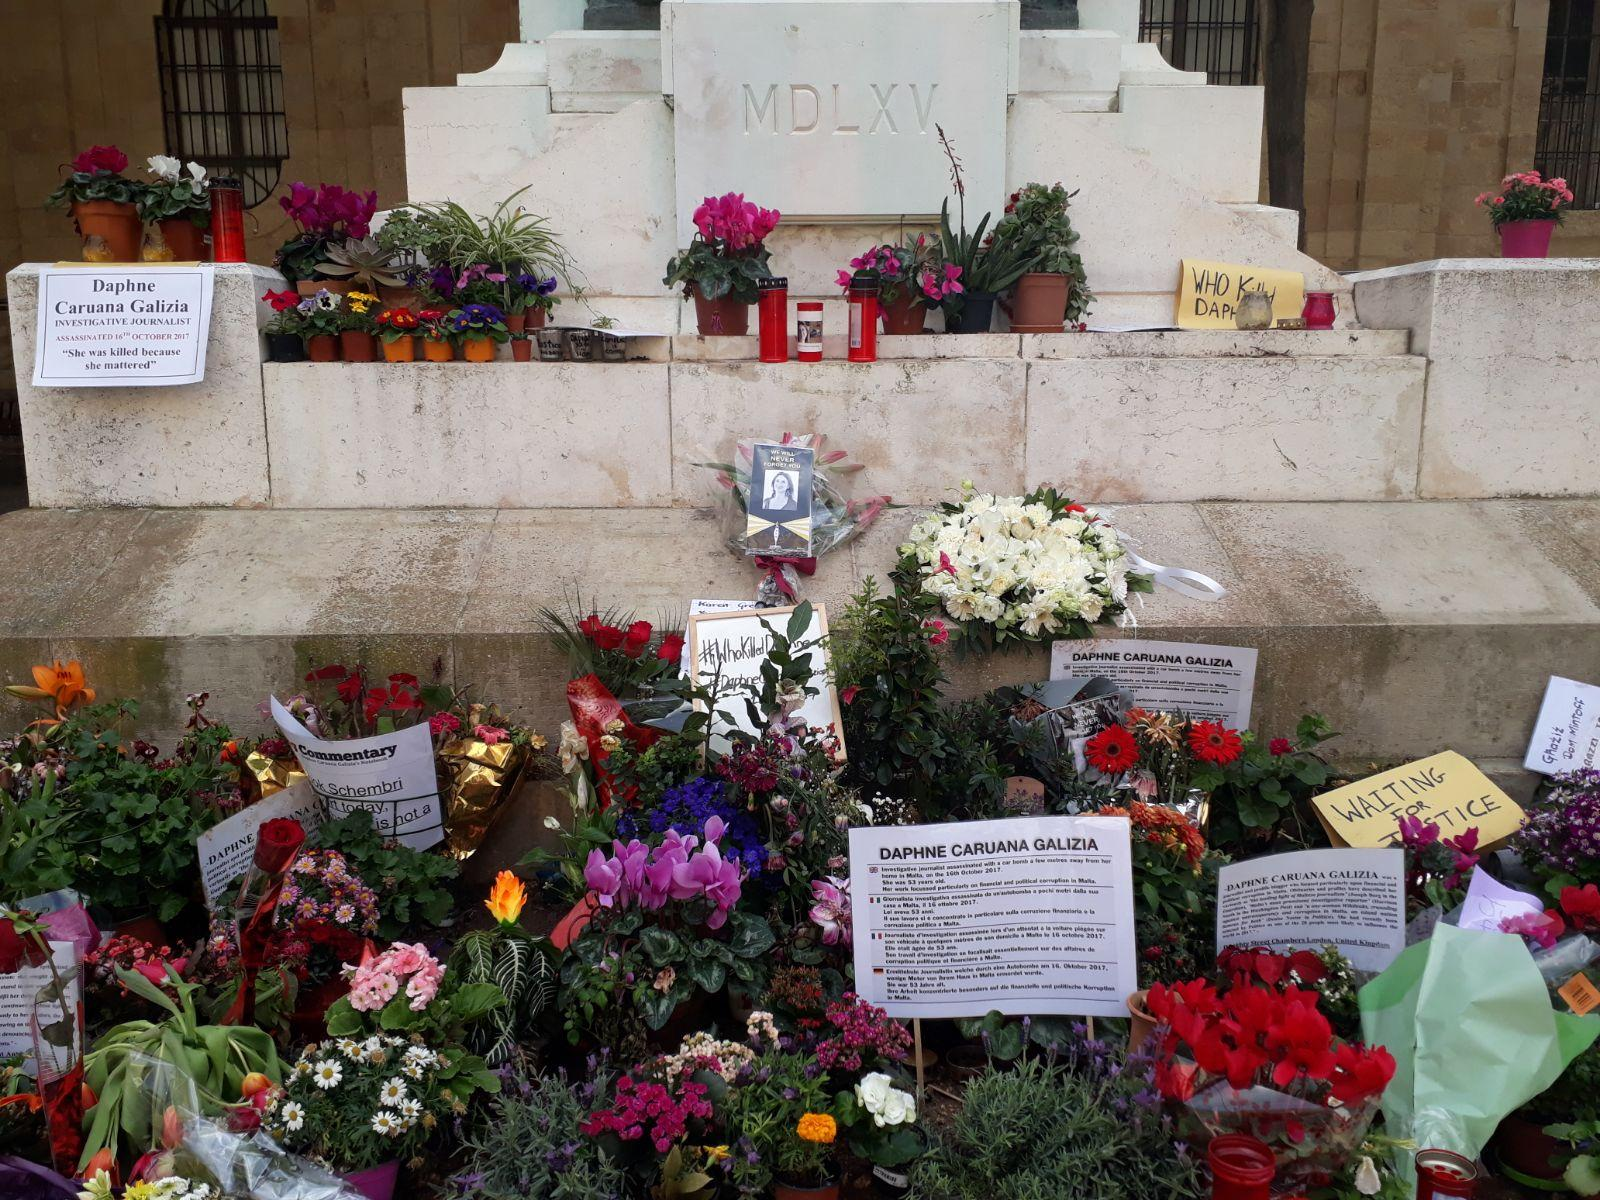 The Caruana Galizia makeshift memorial was repeatedly cleared.